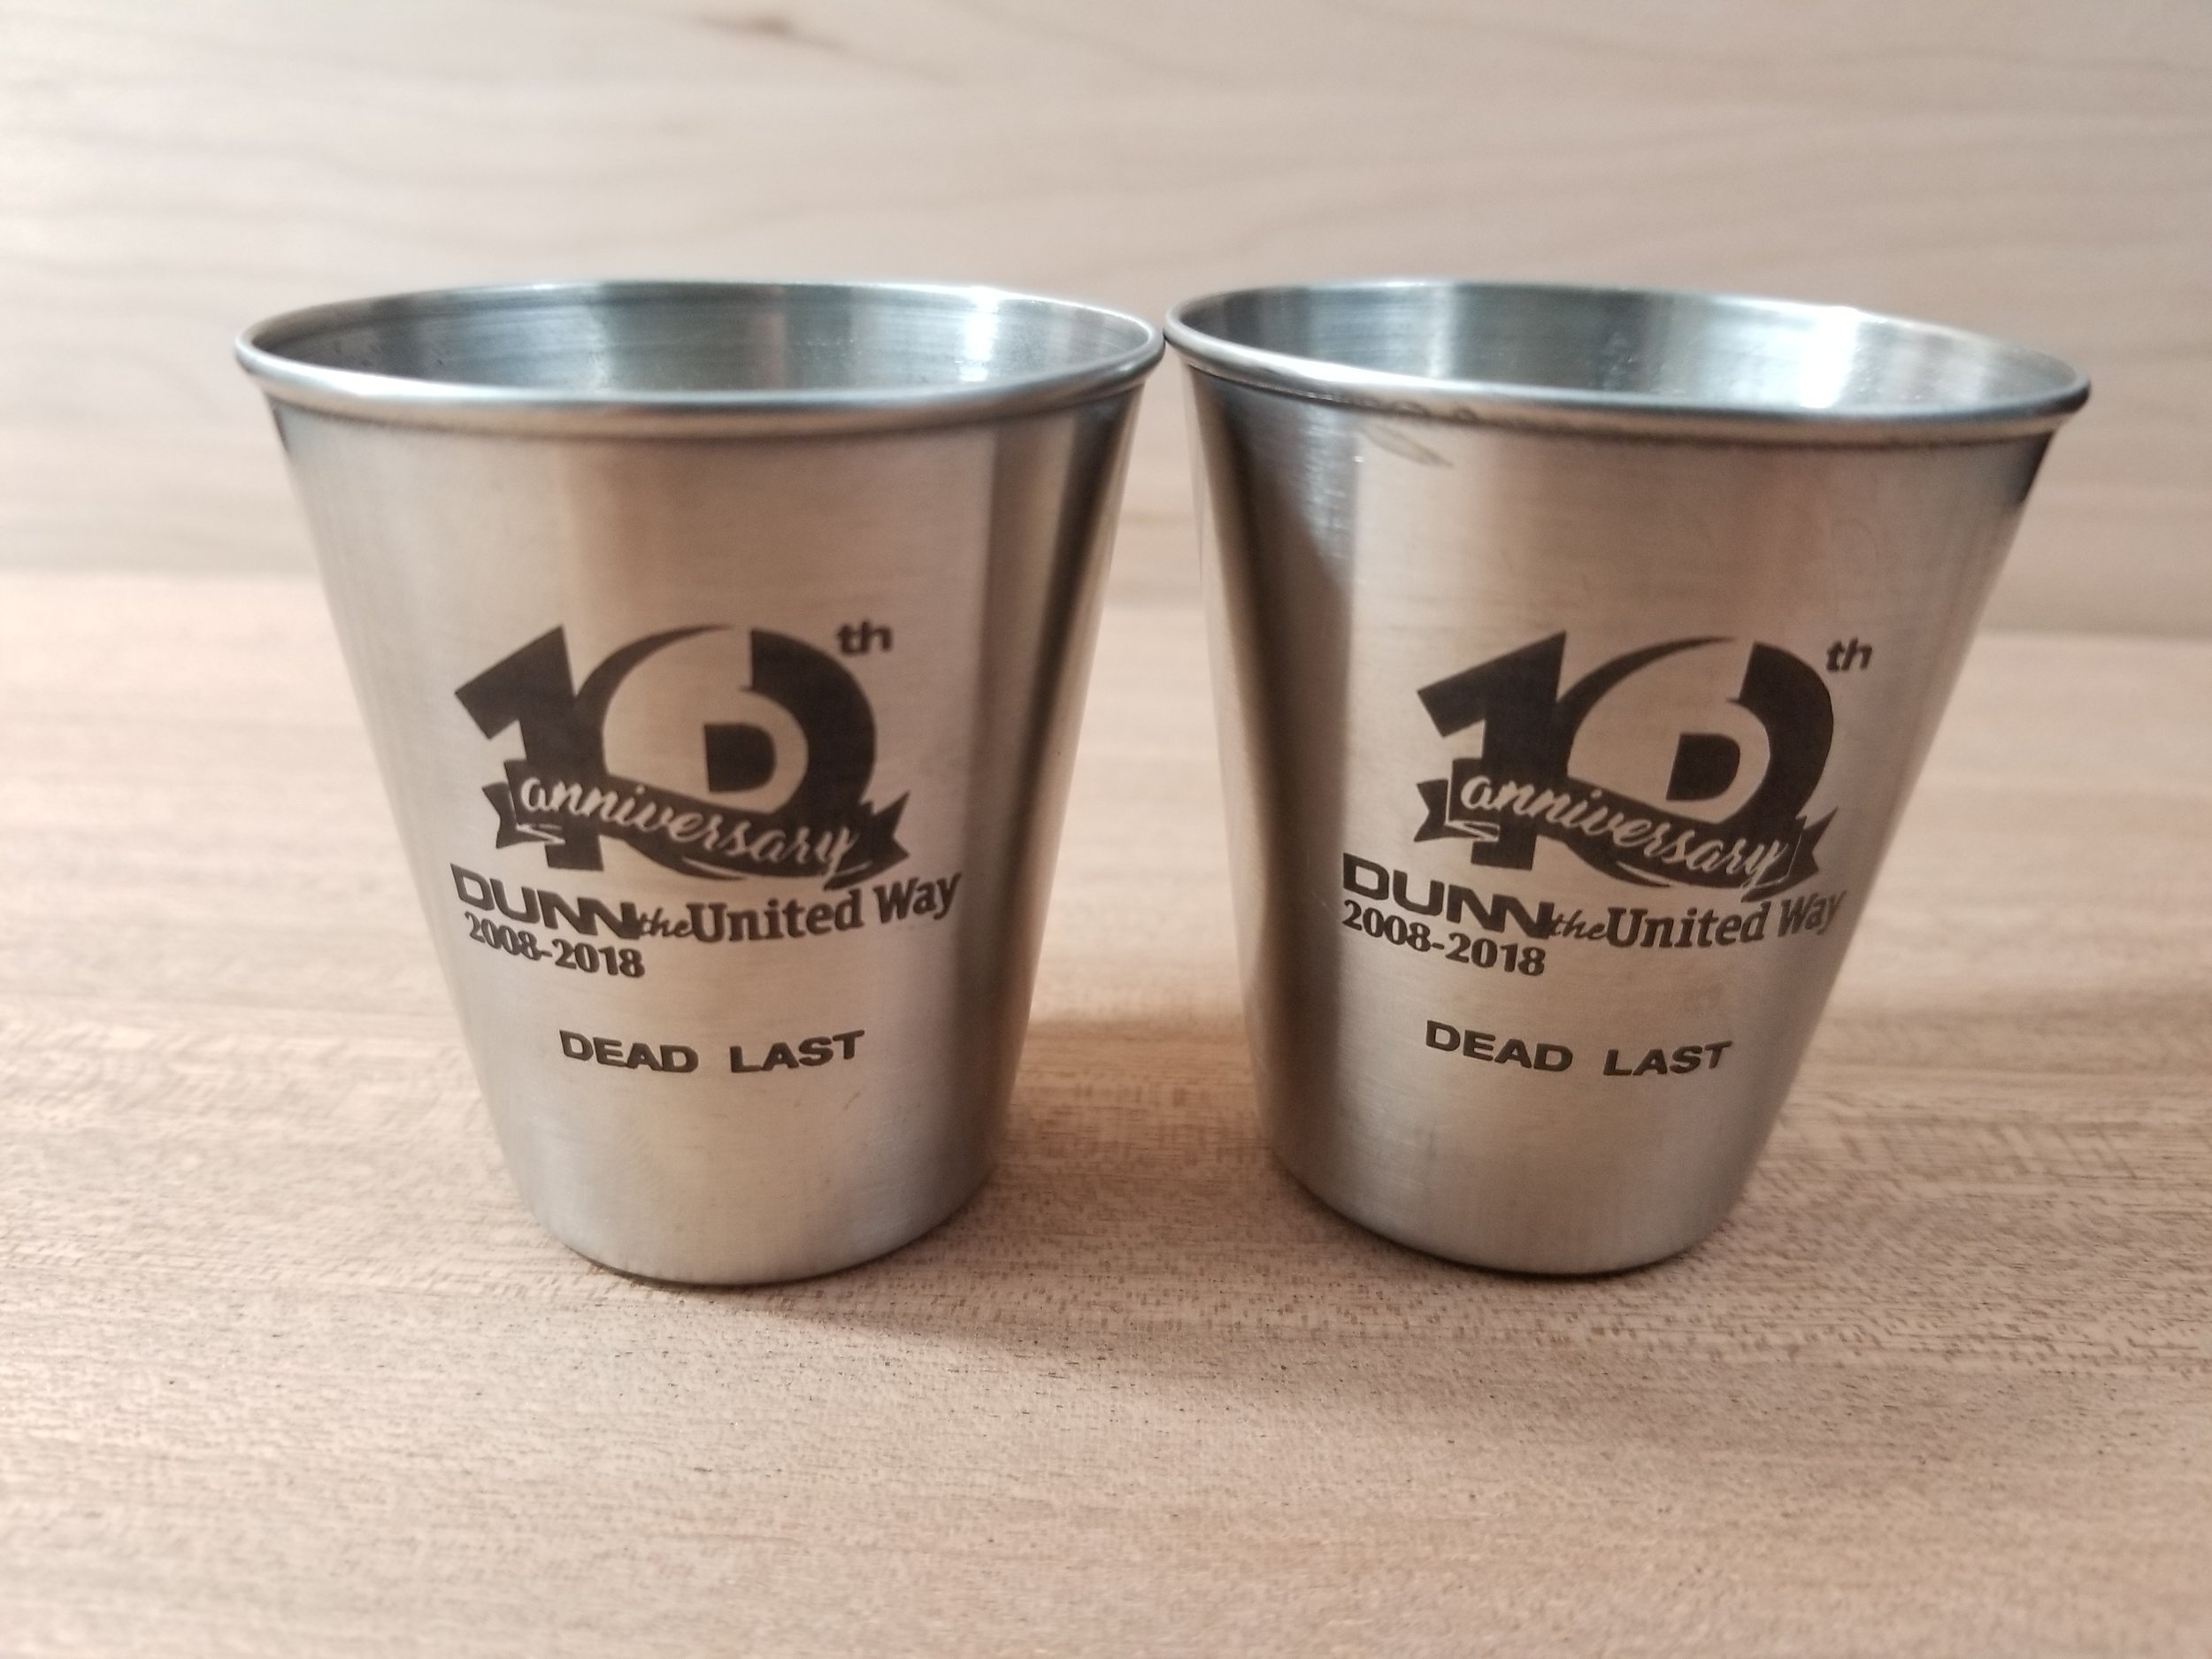 Copy of Engraved Shot Glasses - Personalized Shot Glasses - Custom Shot Glasses - Drinkware Engraving - Personalized Drinkware - Custom Projects - Engrave It Houston